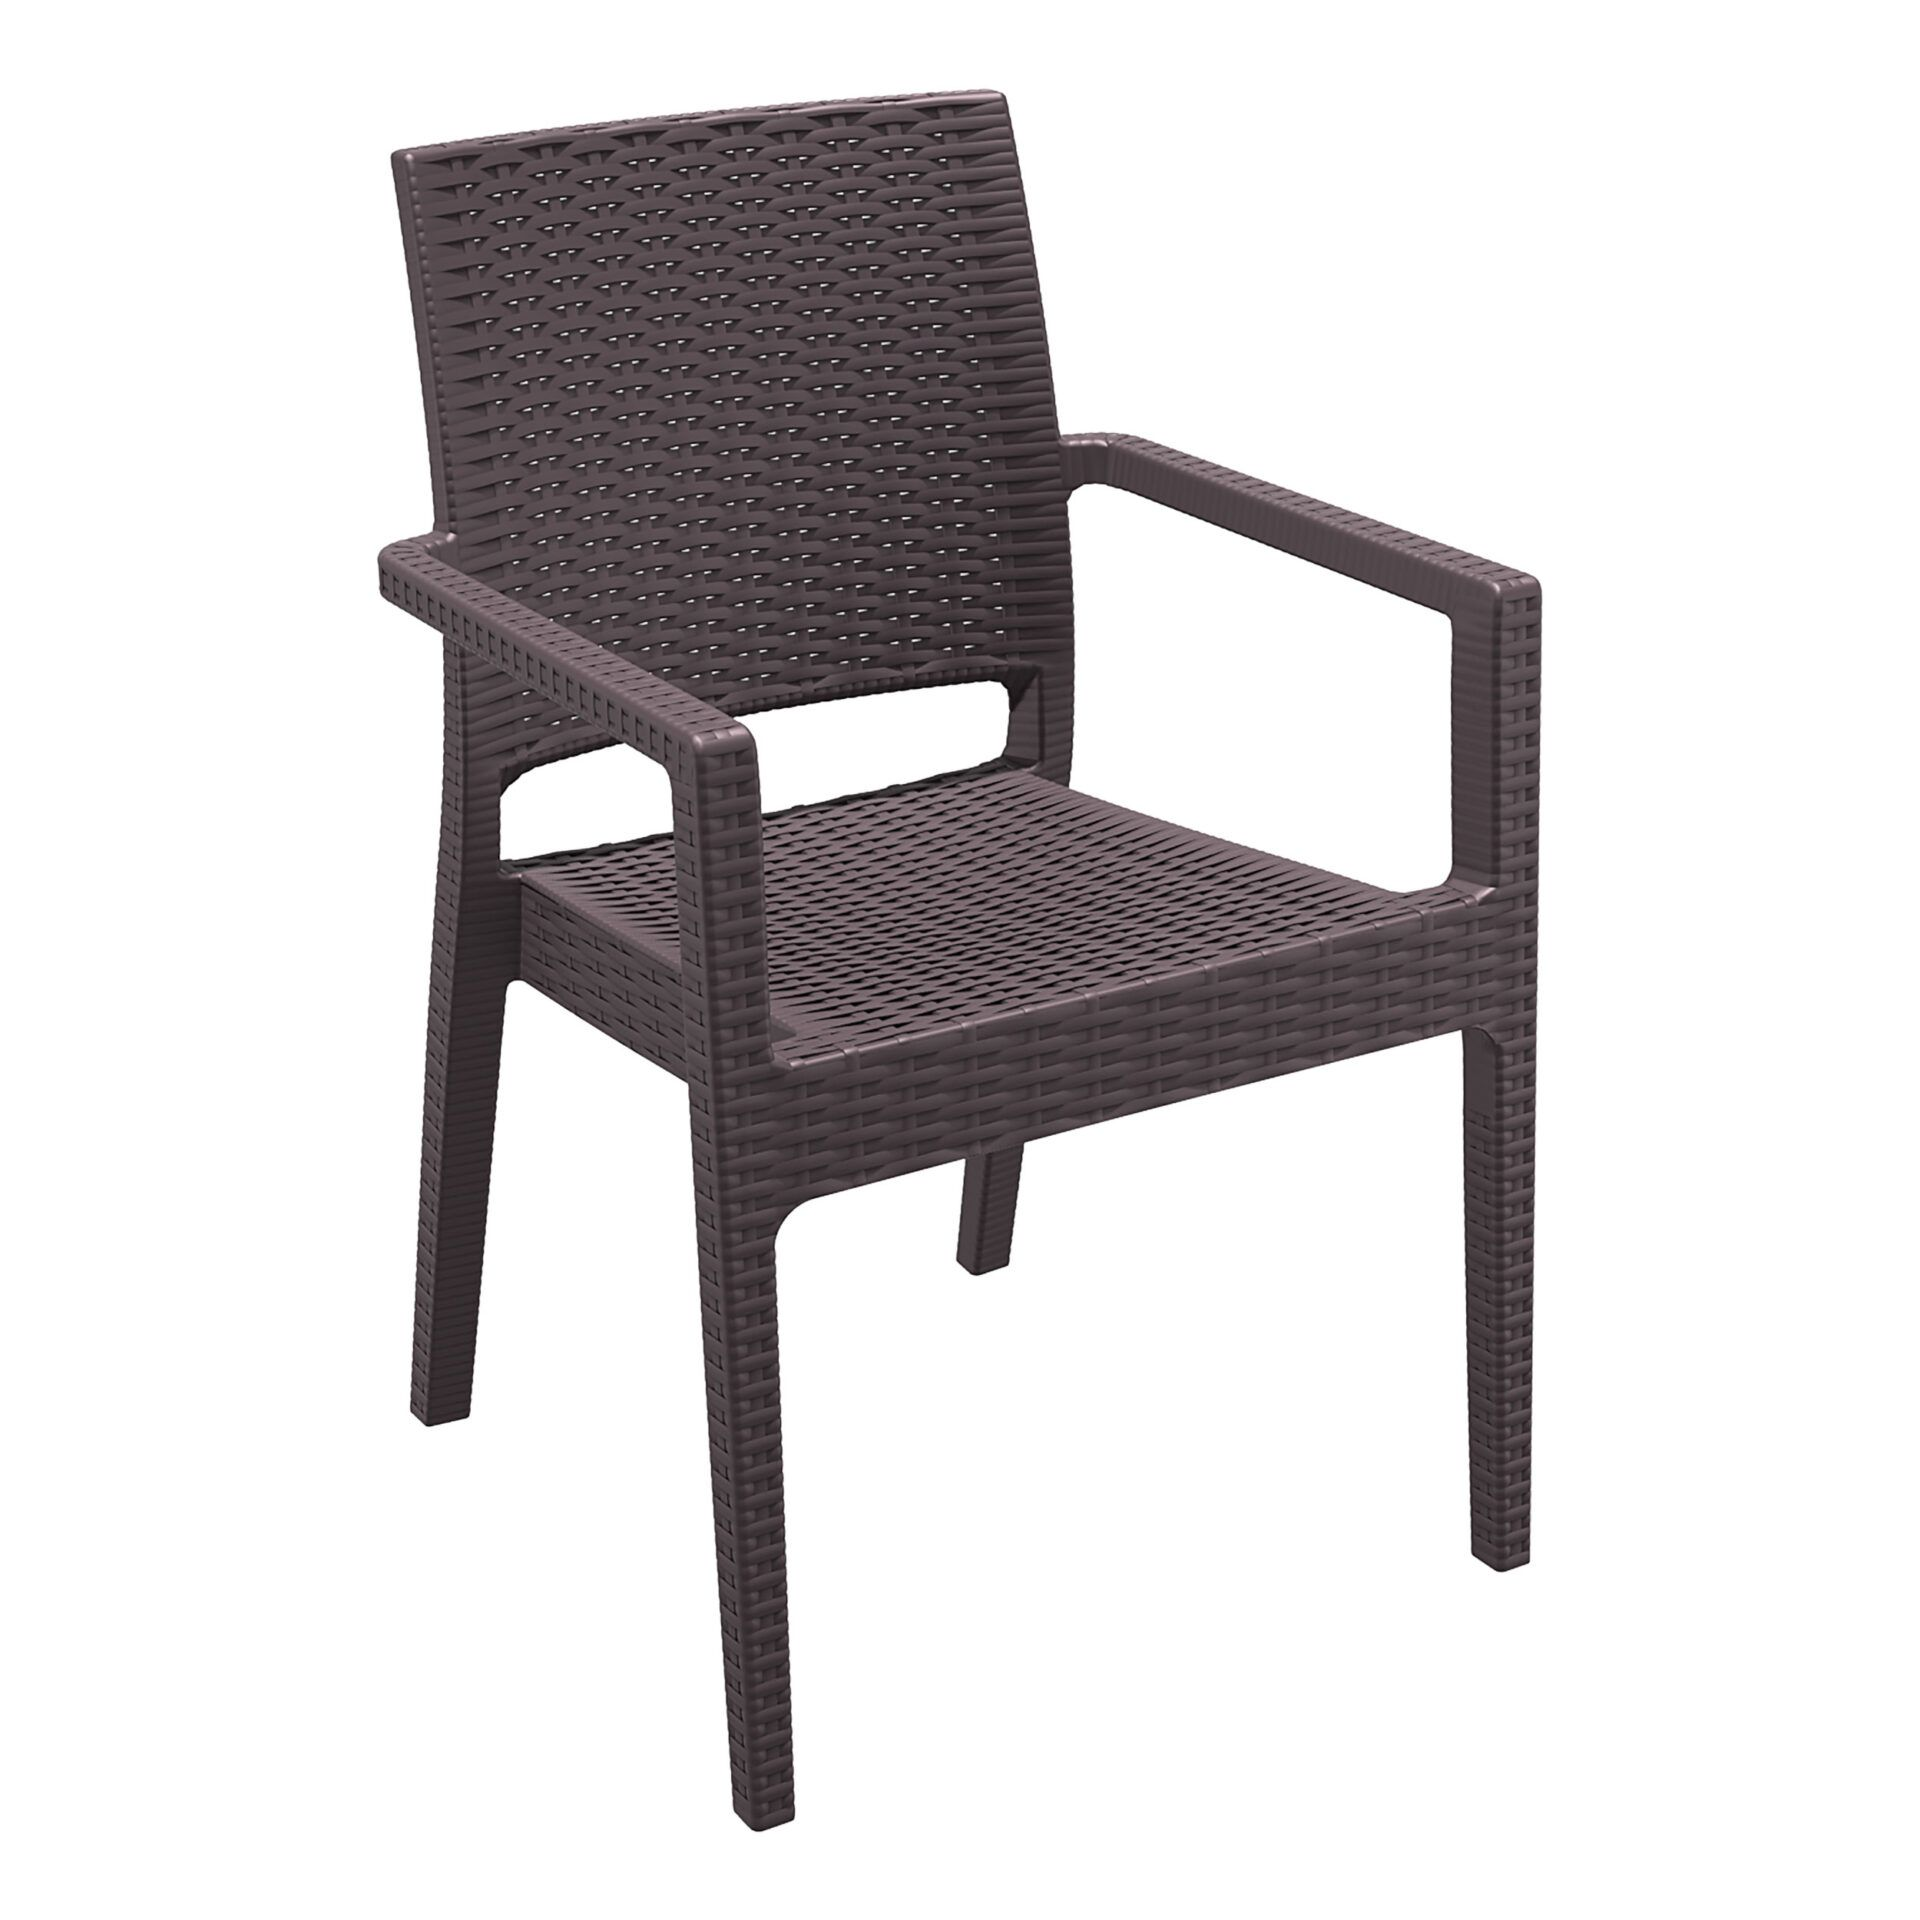 outdoor seating resin rattan ibiza armchair brown front side